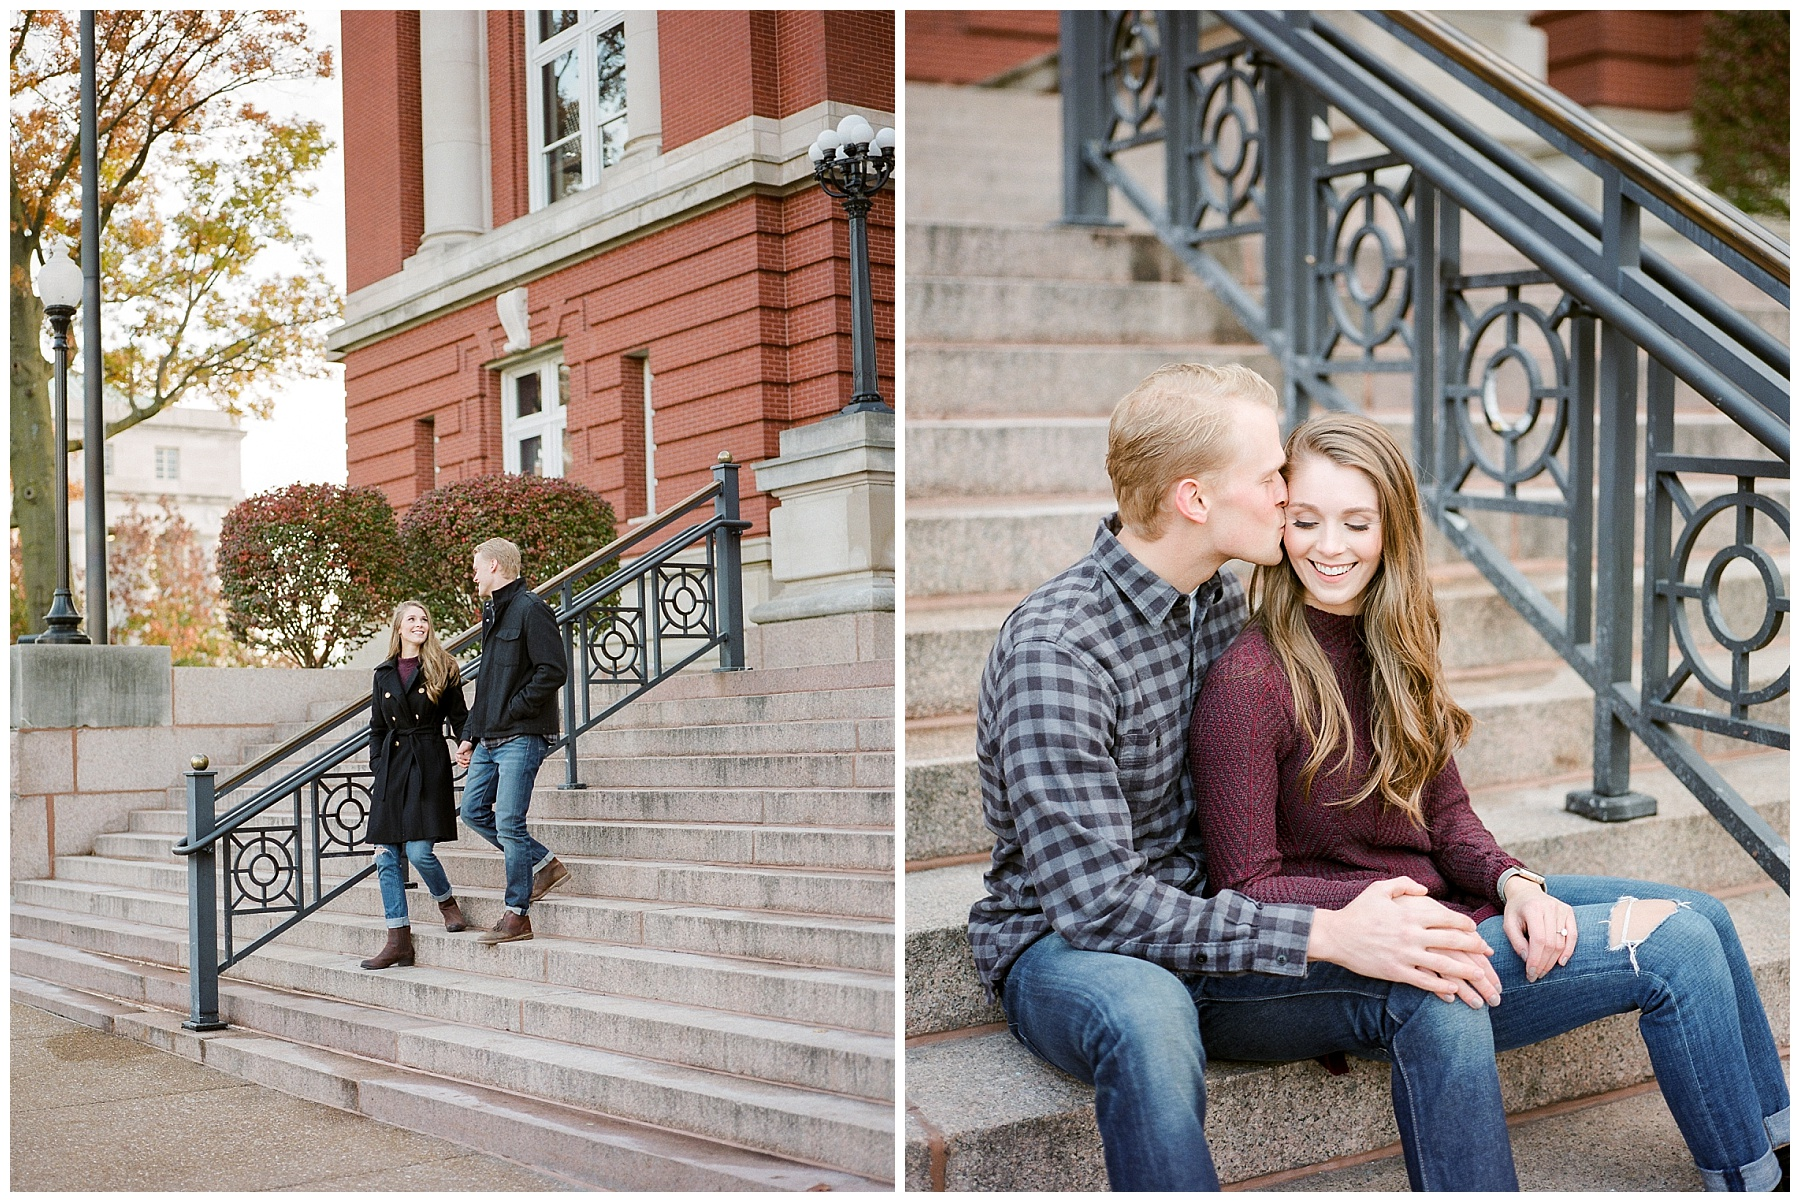 Downtown Jefferson City Engagement Session in Winter at Old Shoe Factory by Kelsi Kliethermes Photography Kansas City Missouri Wedding Photographer_0003.jpg